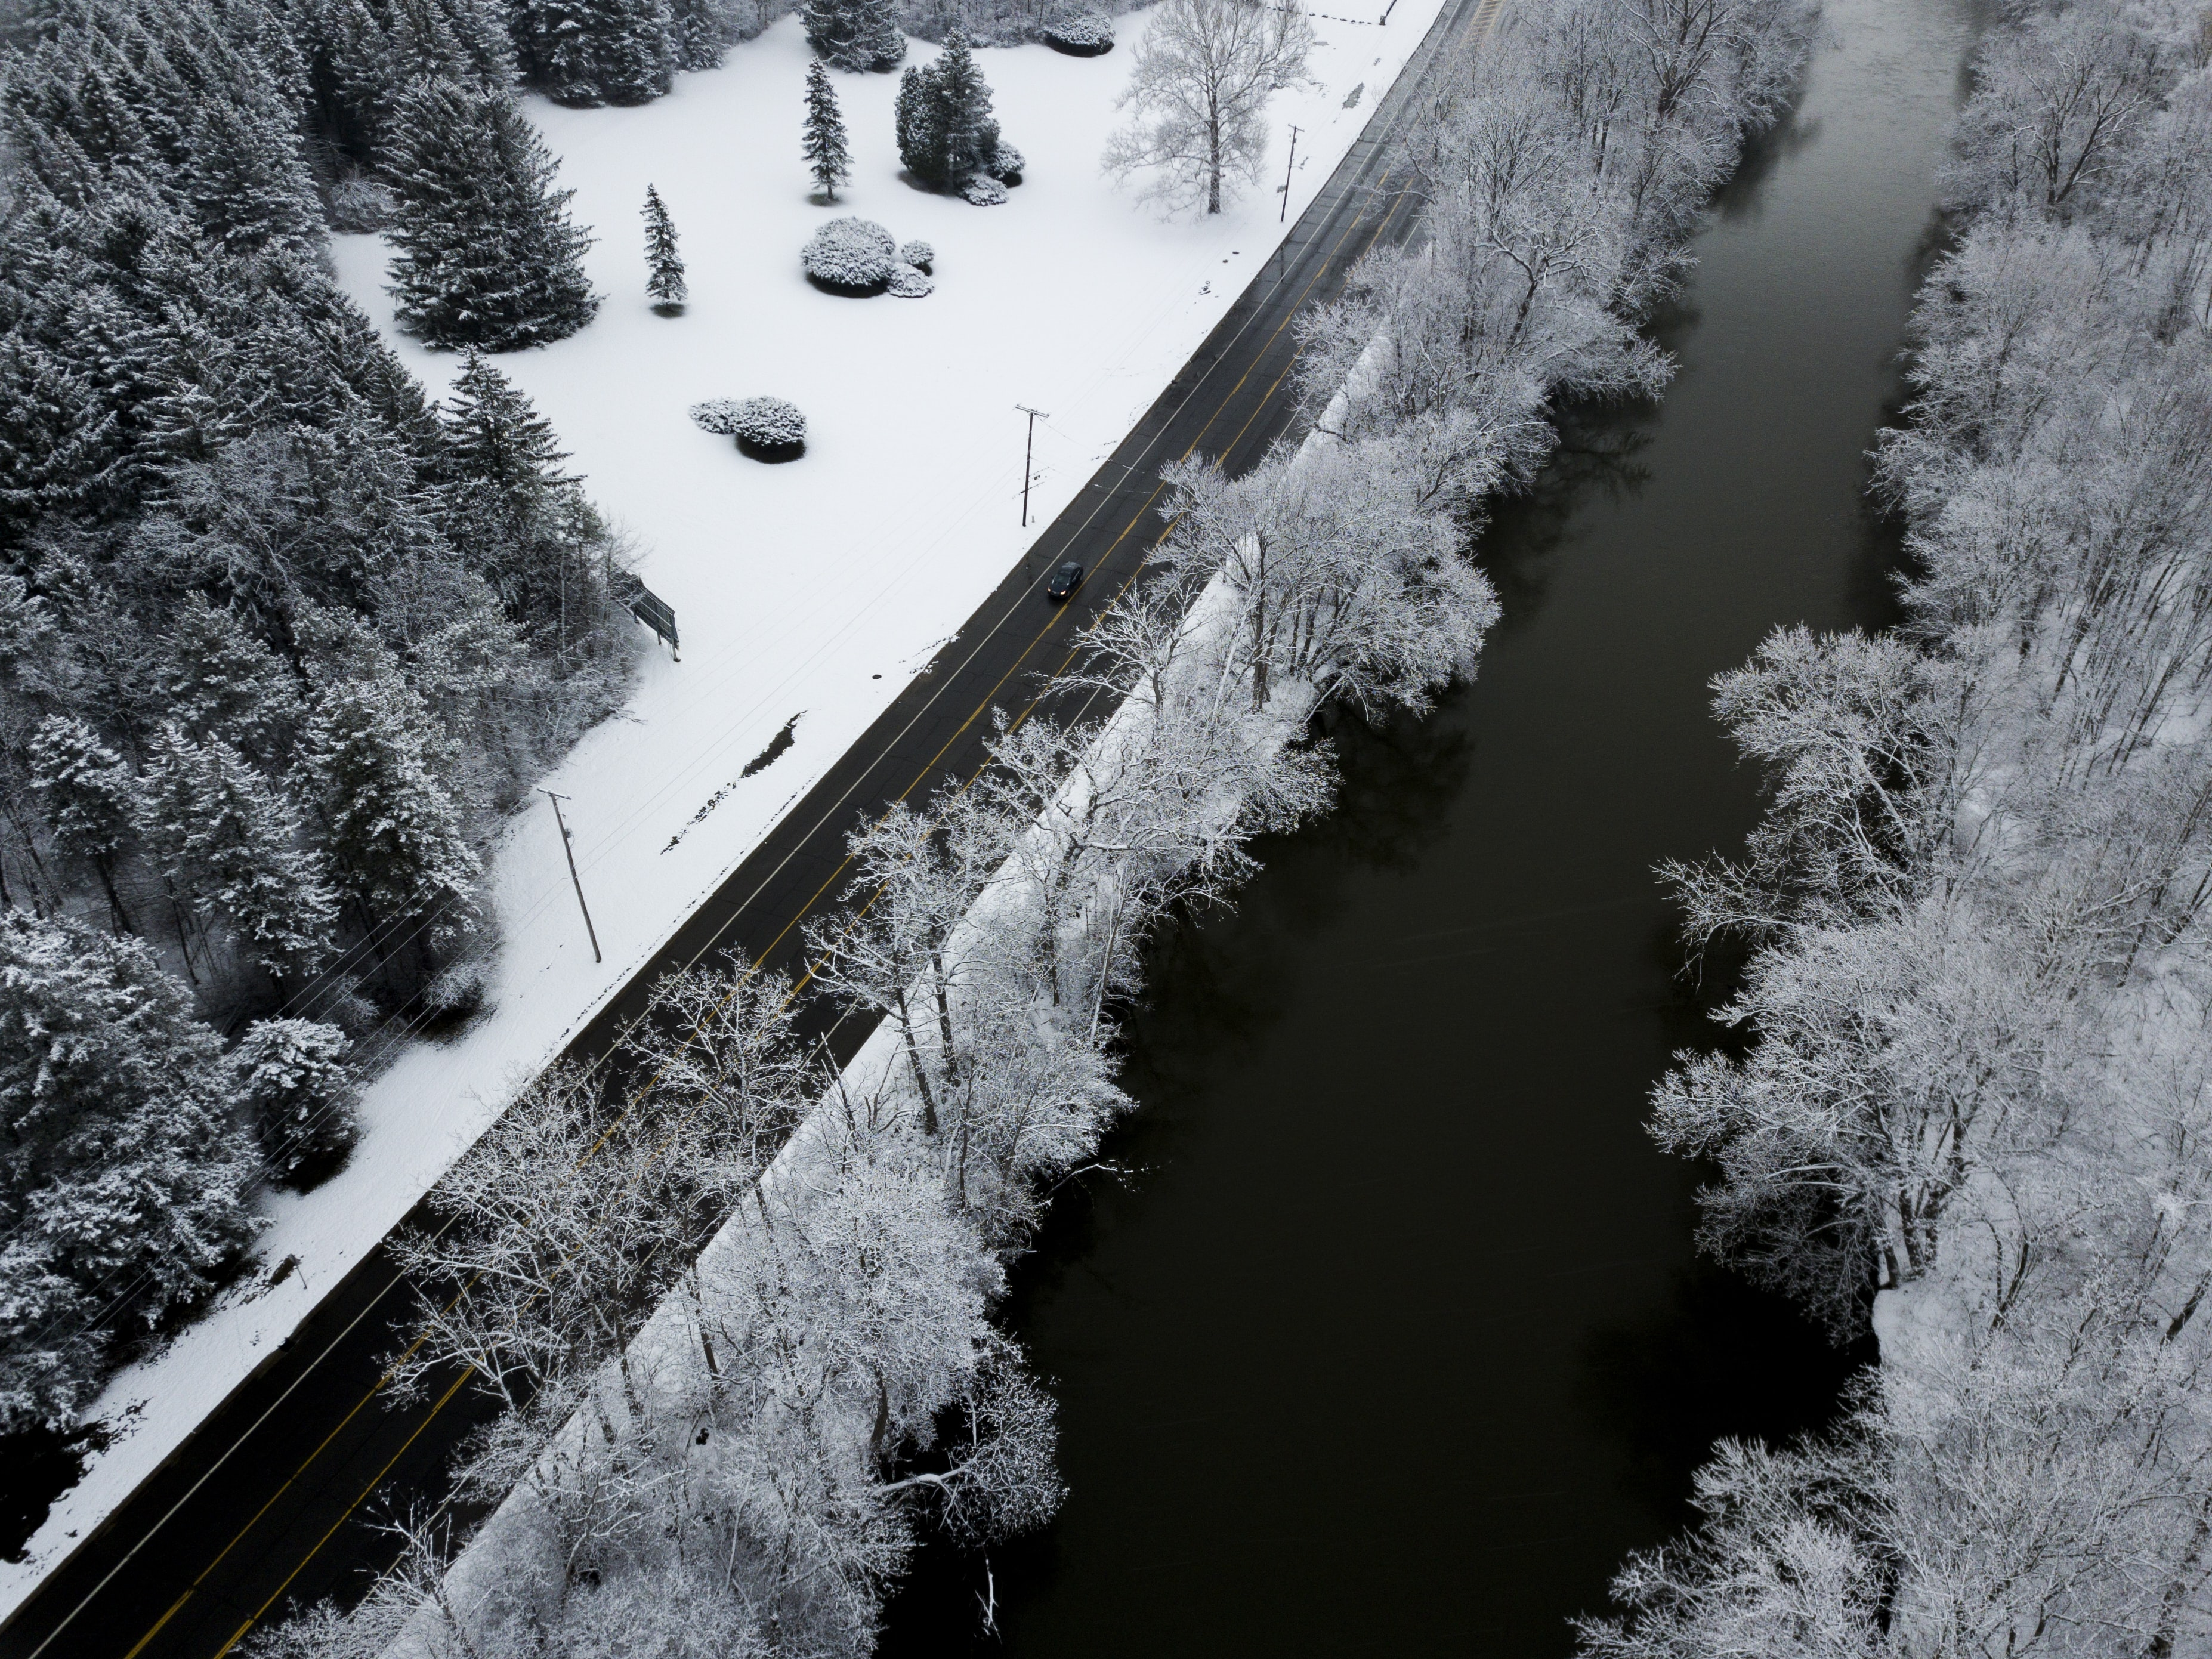 grayscale aerial view of trees and body of water